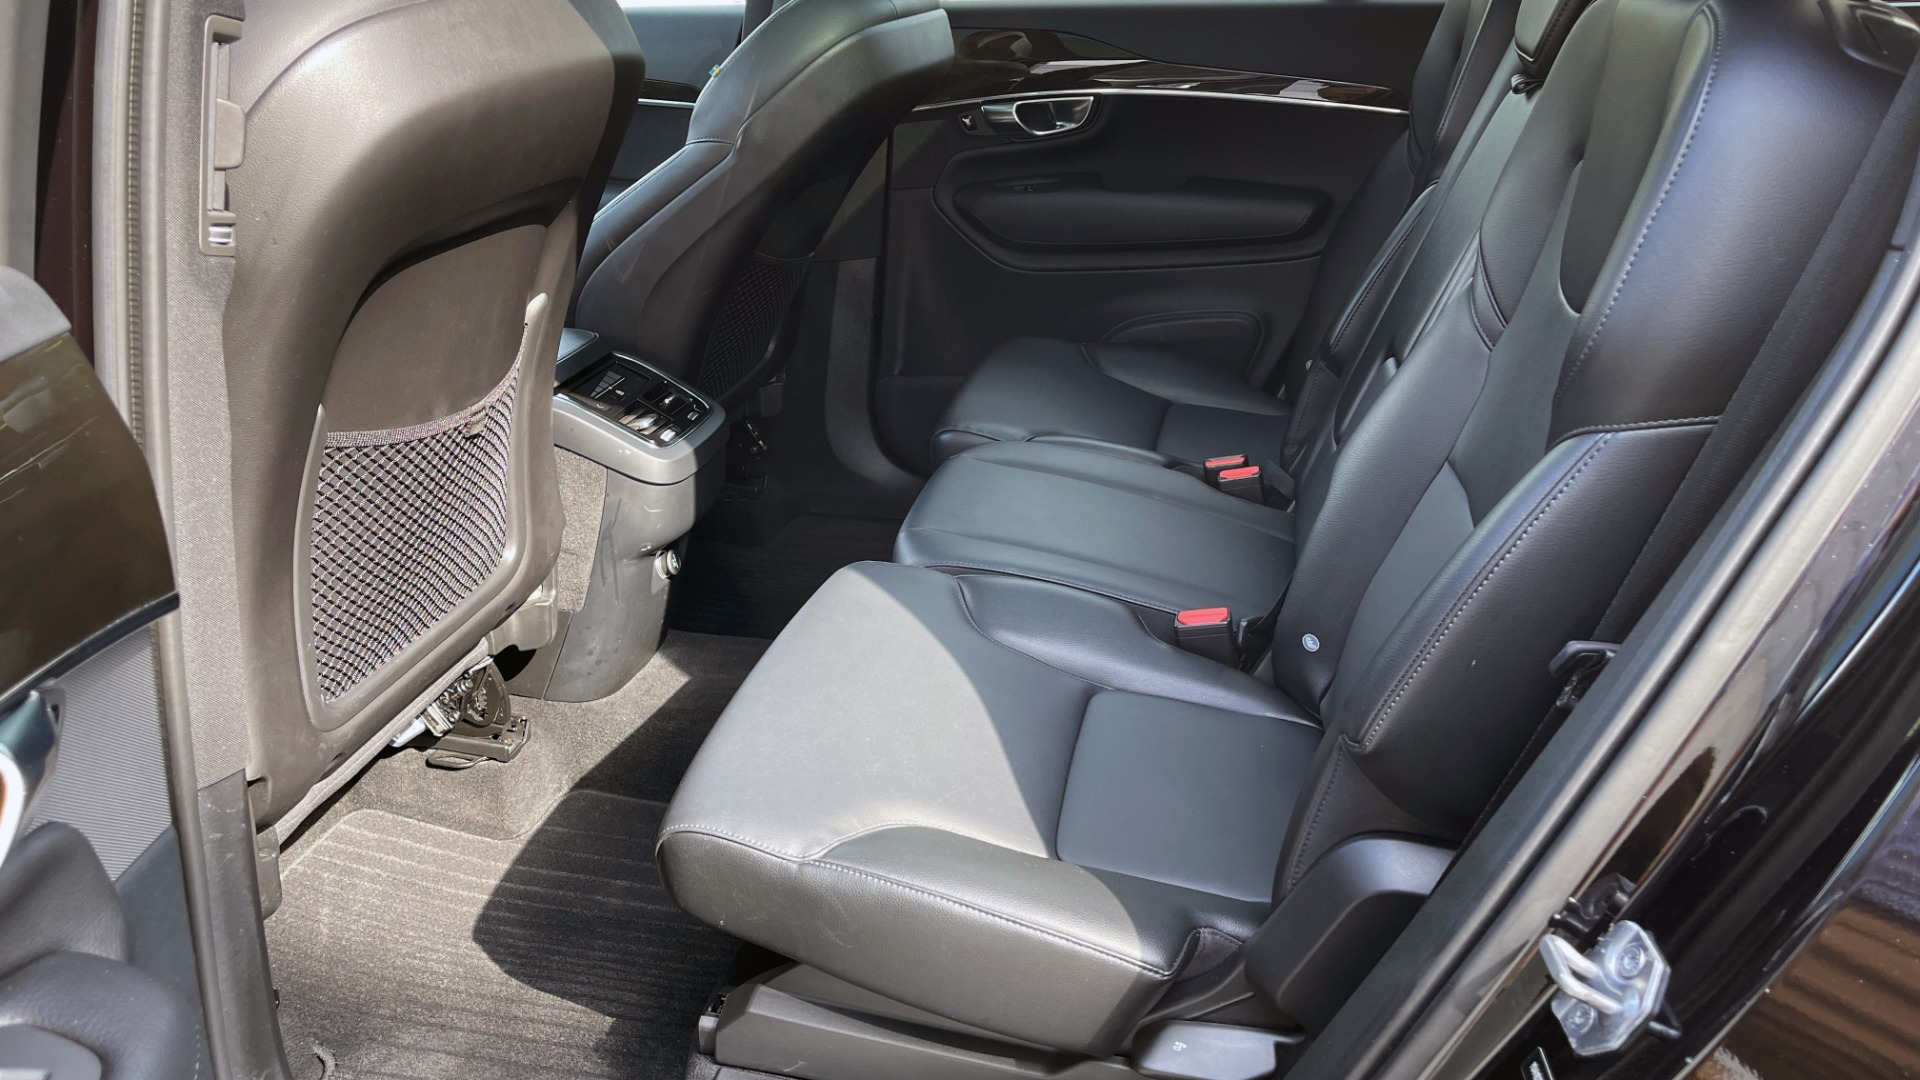 Used 2018 Volvo XC90 T5 AWD MOMENTUM PLUS / NAV / SUNROOF / 3-ROW / REARVIEW for sale $40,295 at Formula Imports in Charlotte NC 28227 68